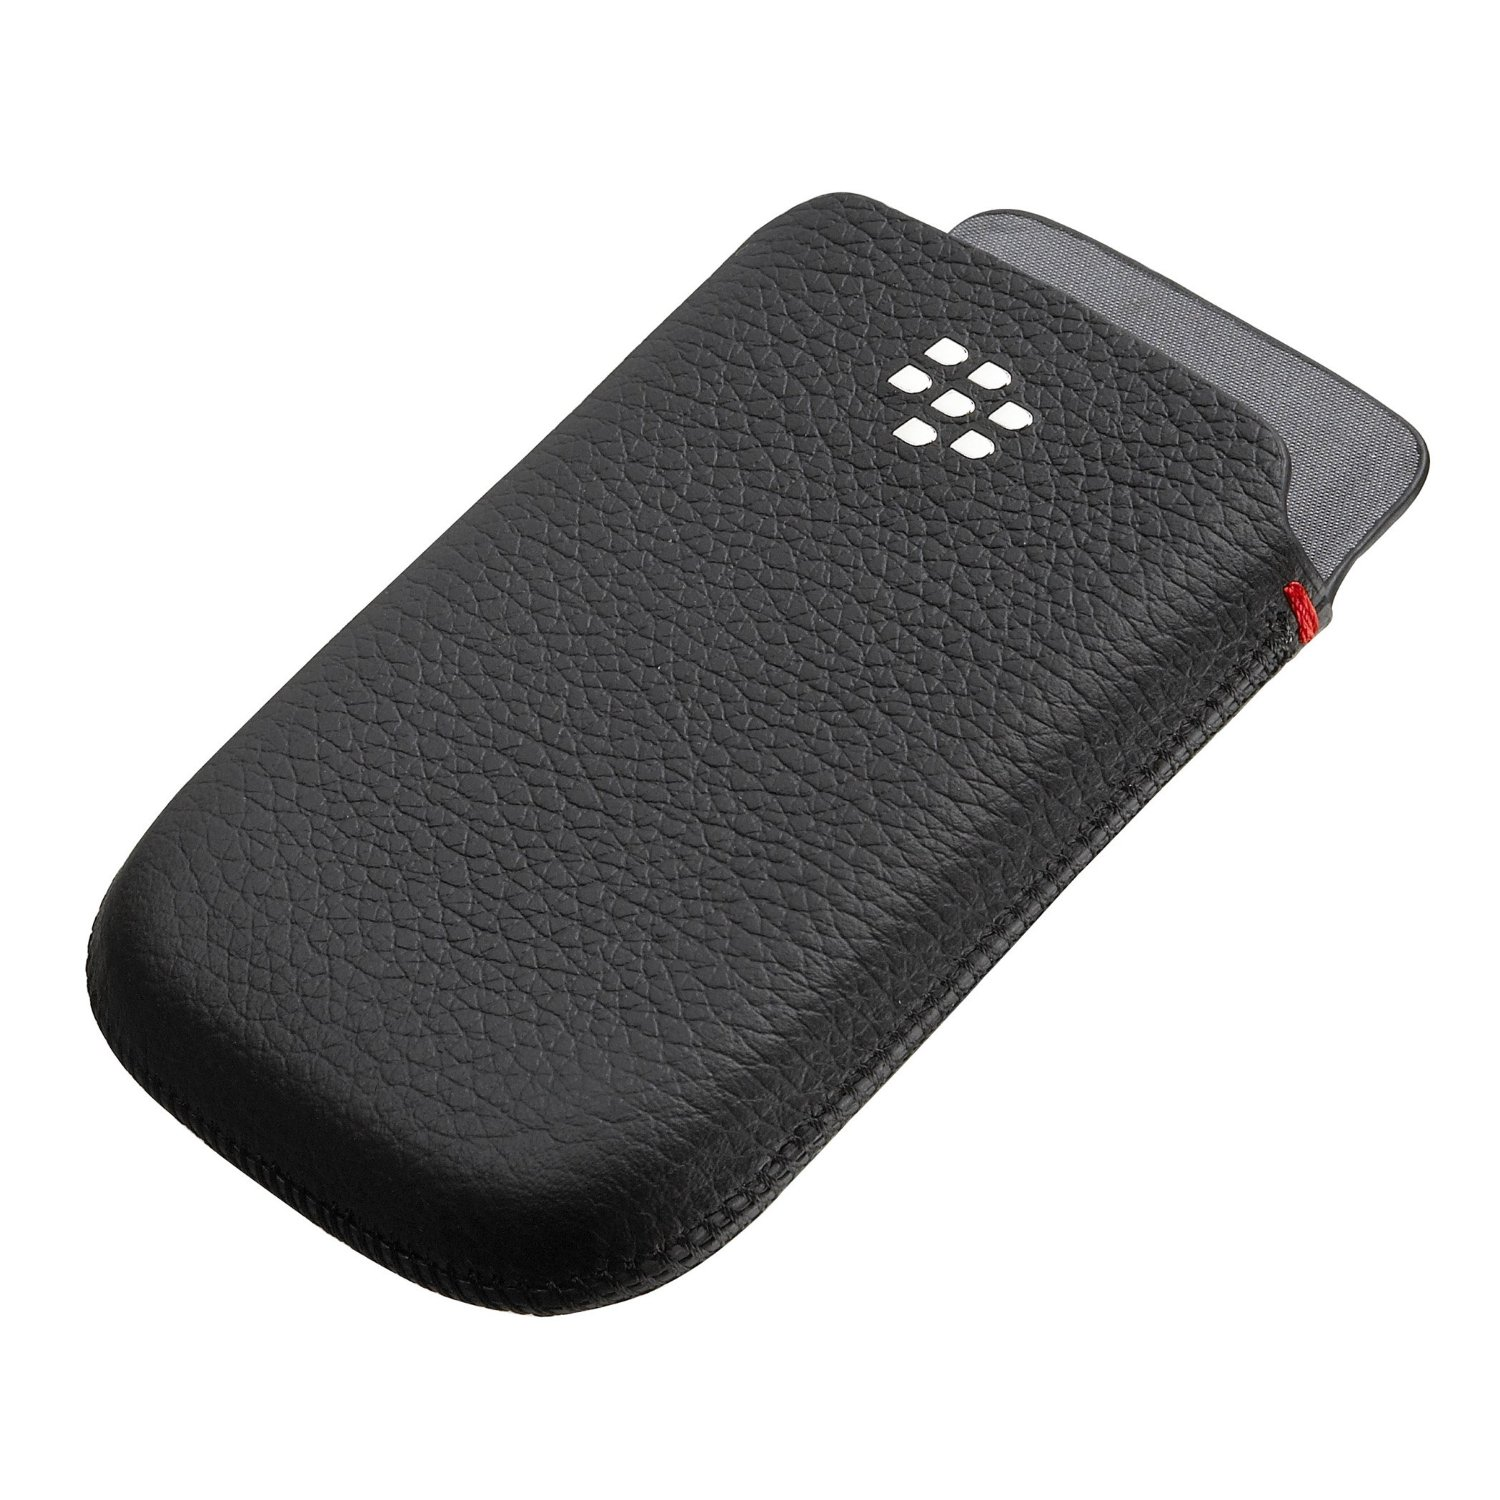 BlackBerry pouzdro Pocket Style- BlackBerry Curve 8520, 8900, 9300 a Bold 9700, 9780, model ACC-32917-201